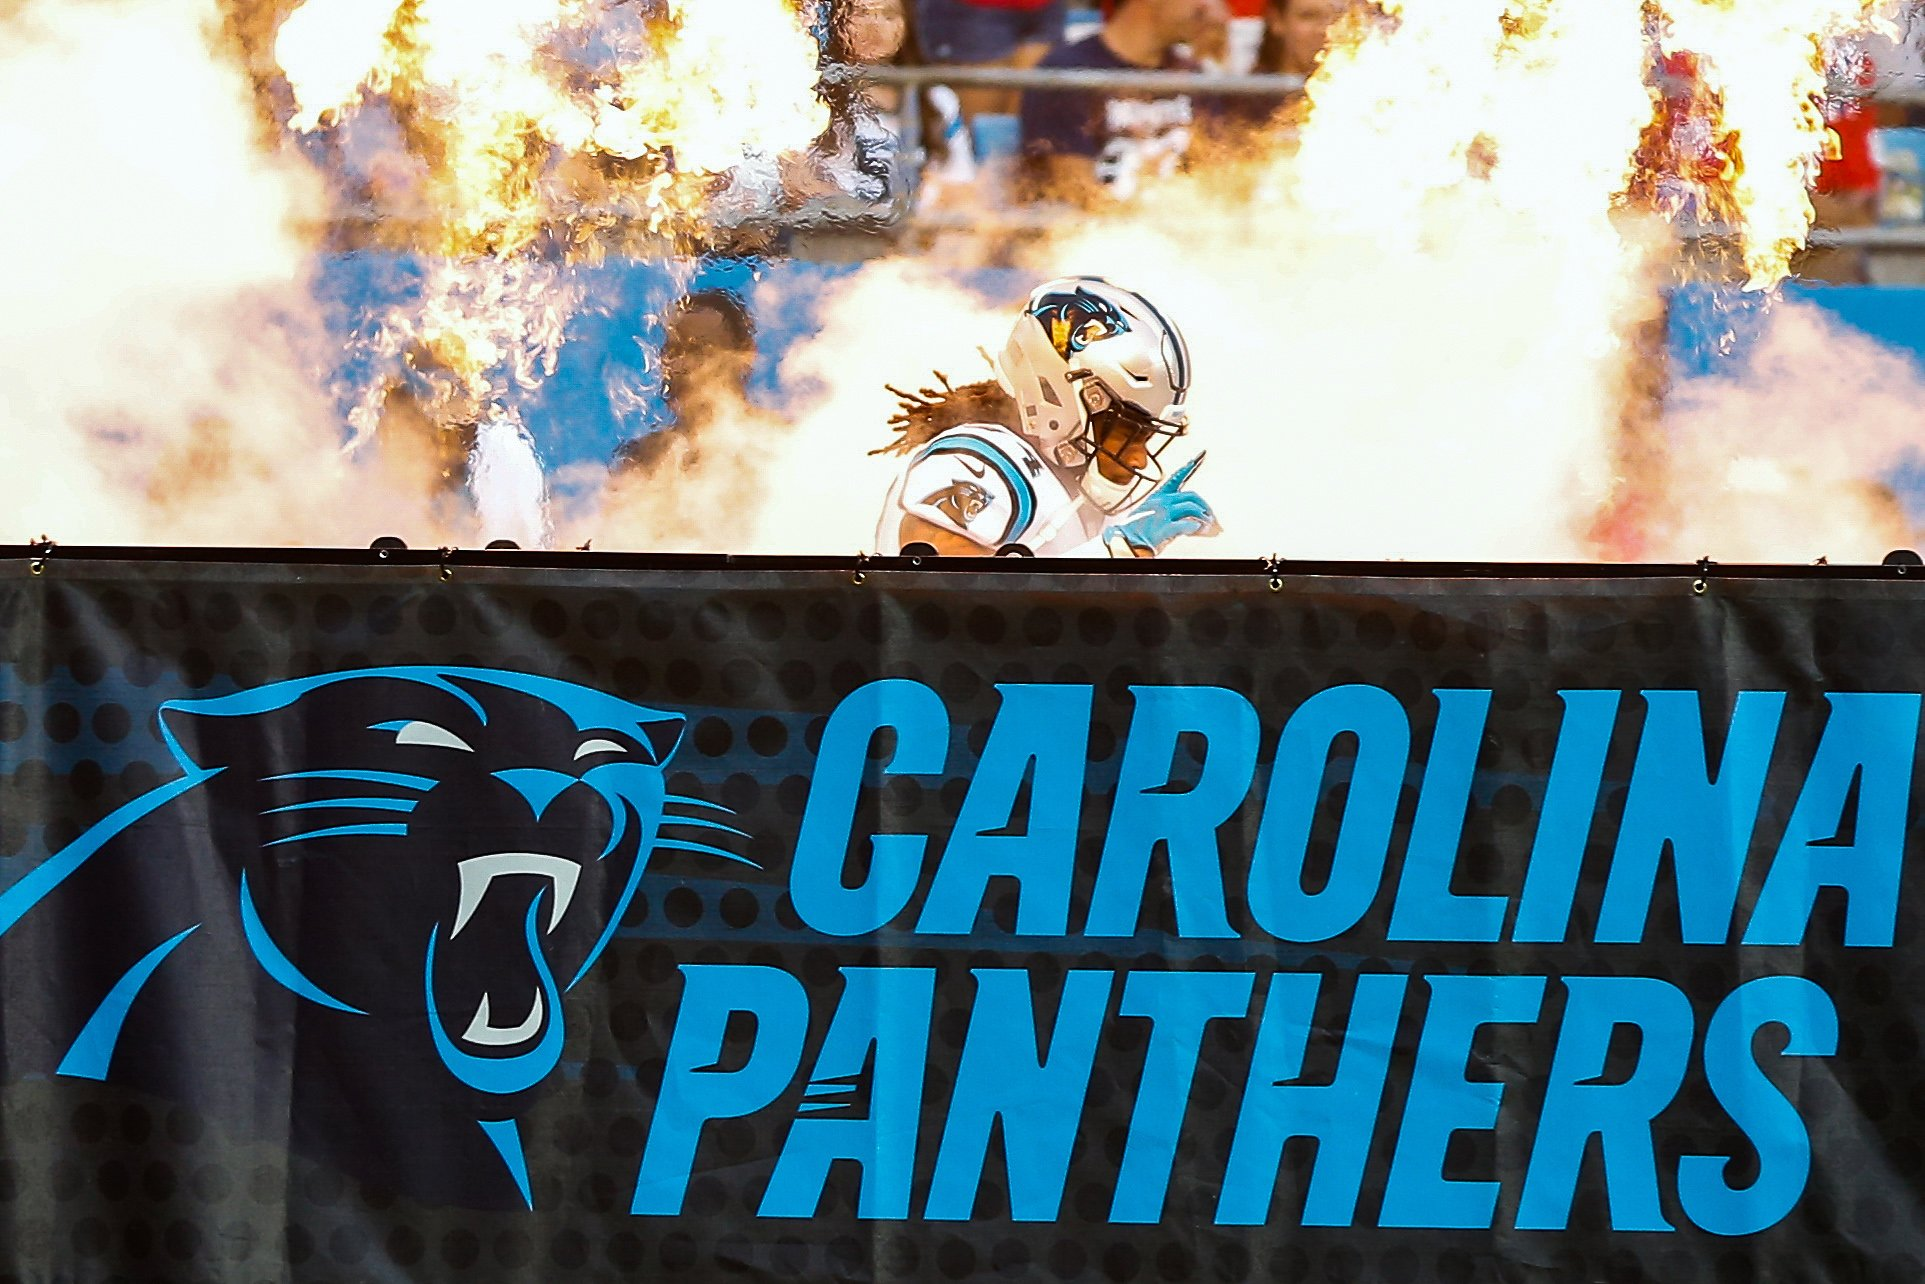 Panthers coach resigns amid vague text allegations